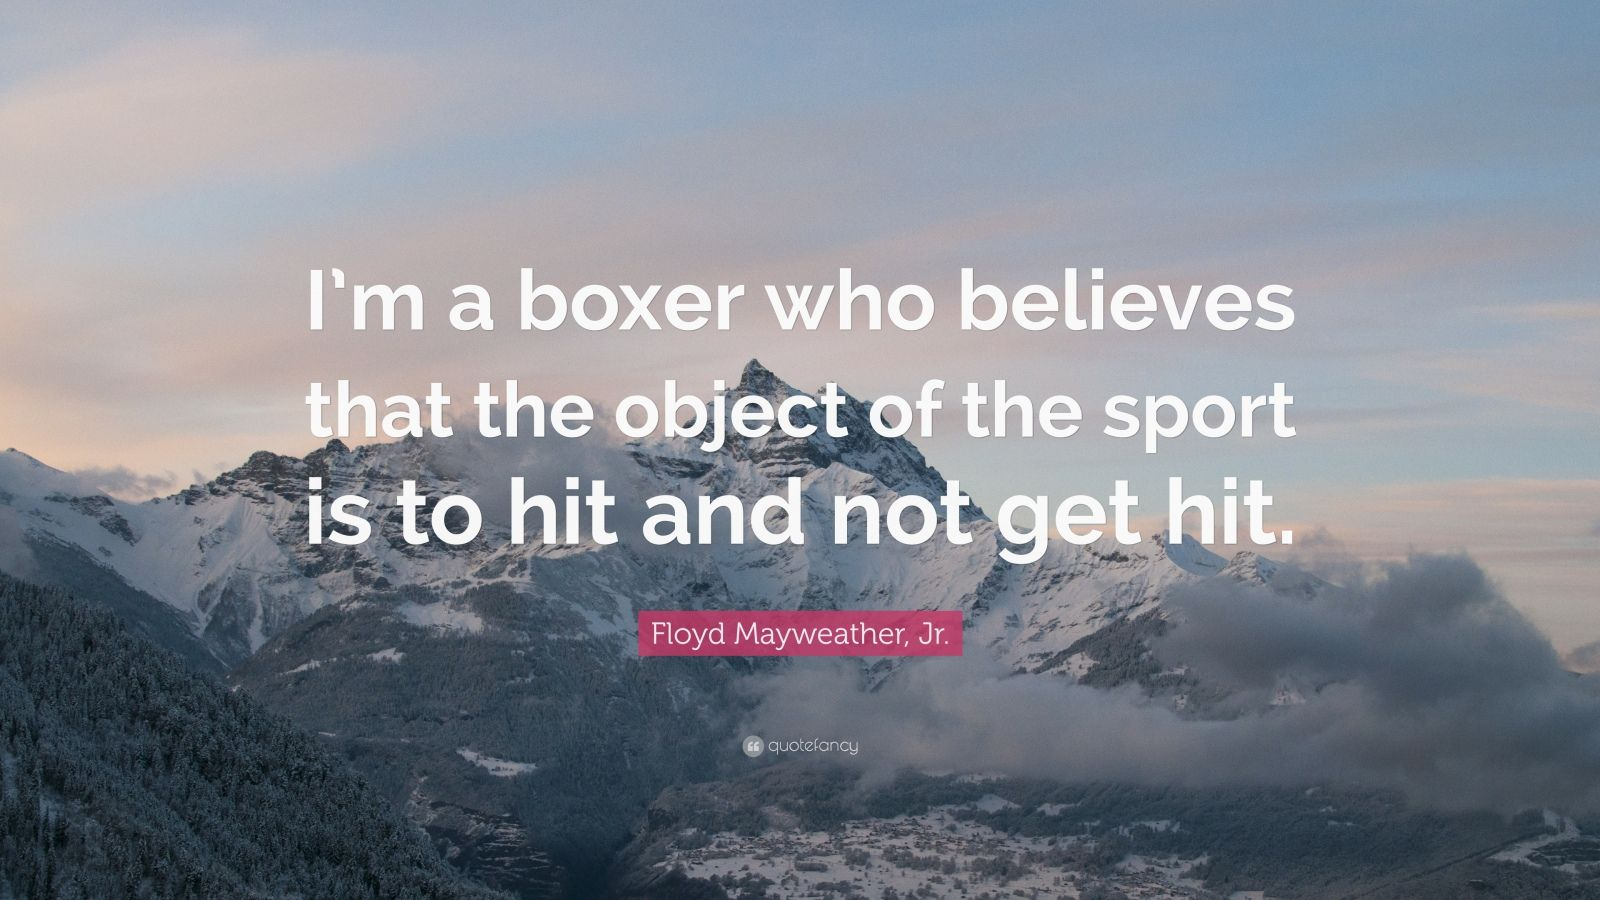 """Floyd Mayweather, Jr. Quote: """"I'm a boxer who believes that the object of the sport is to hit and not get hit."""""""